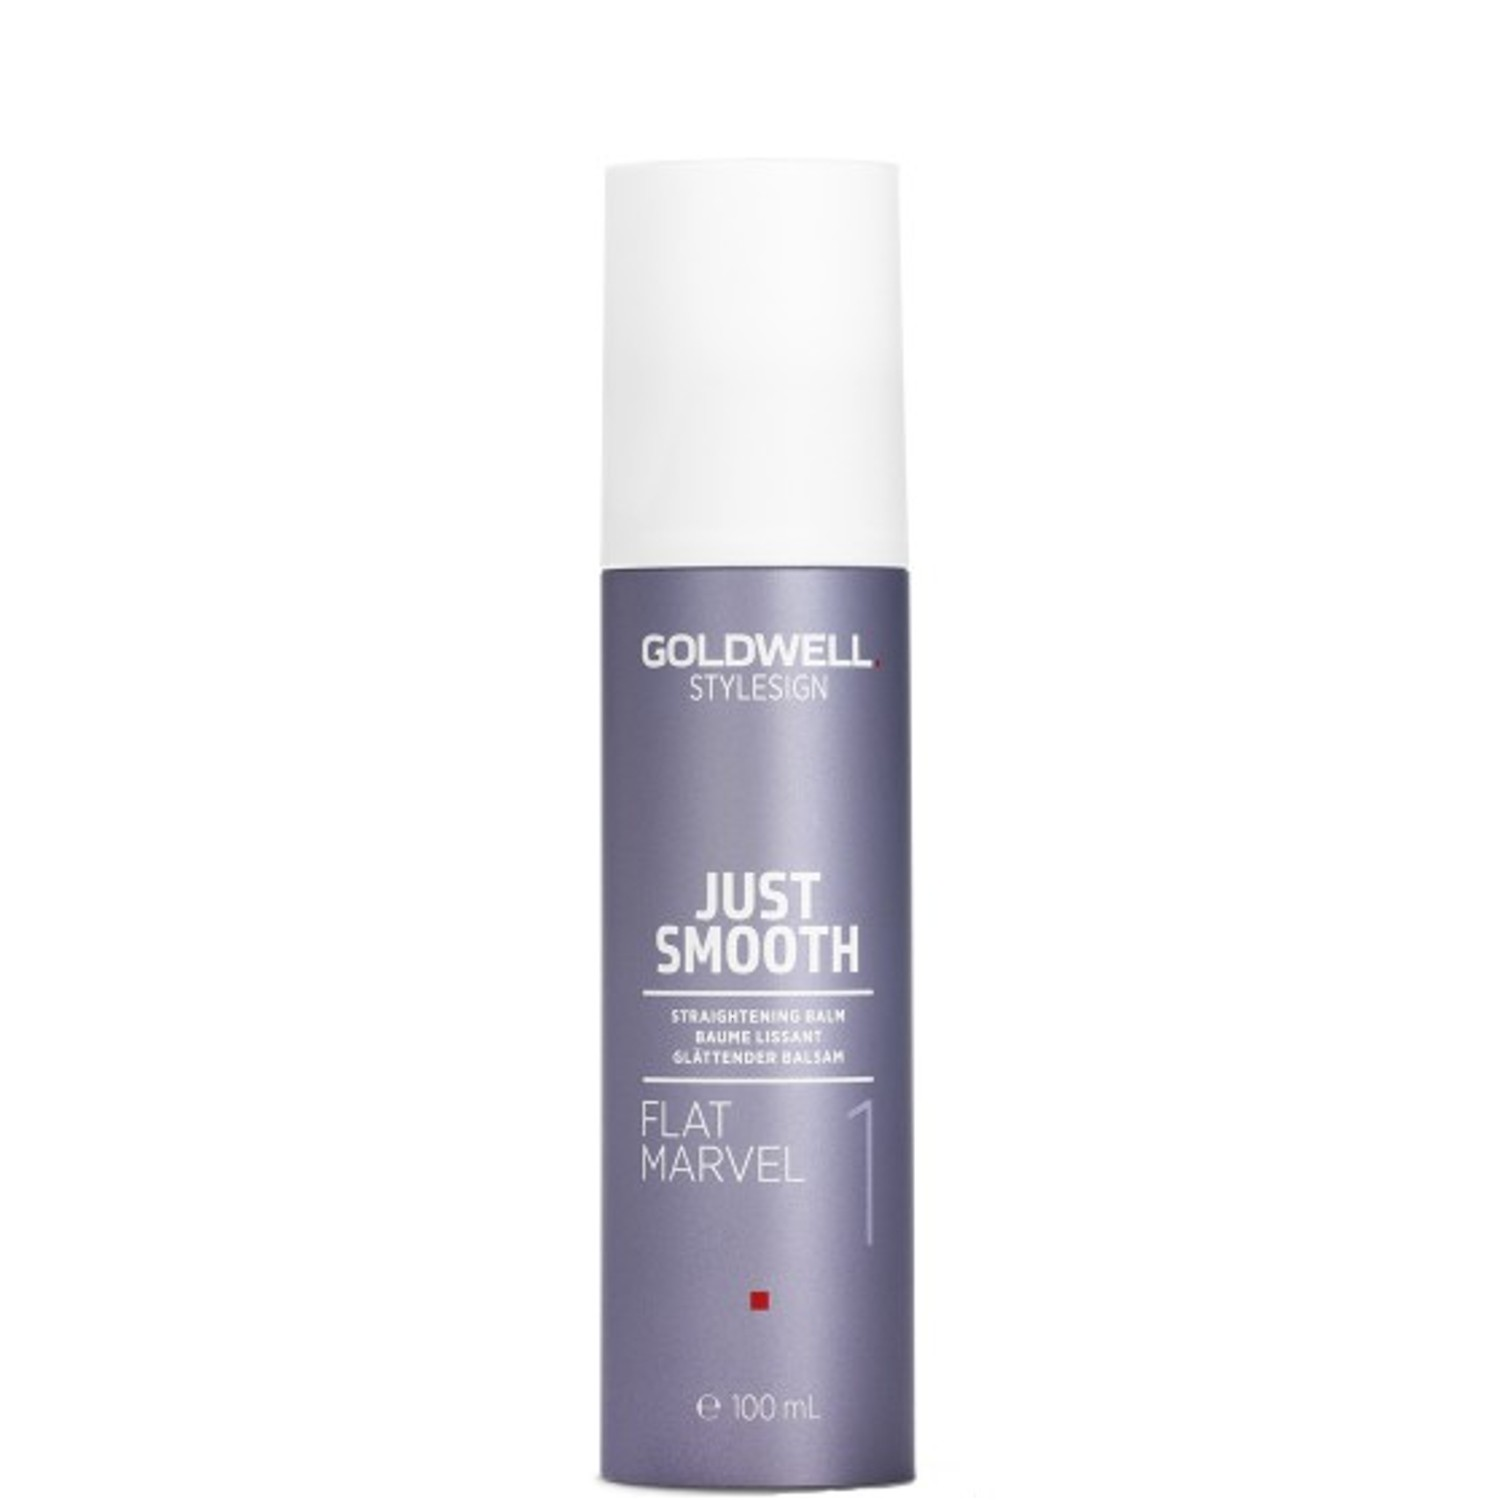 GOLDWELL Style Sign Just Smooth FLAT MARVEL 100 ml